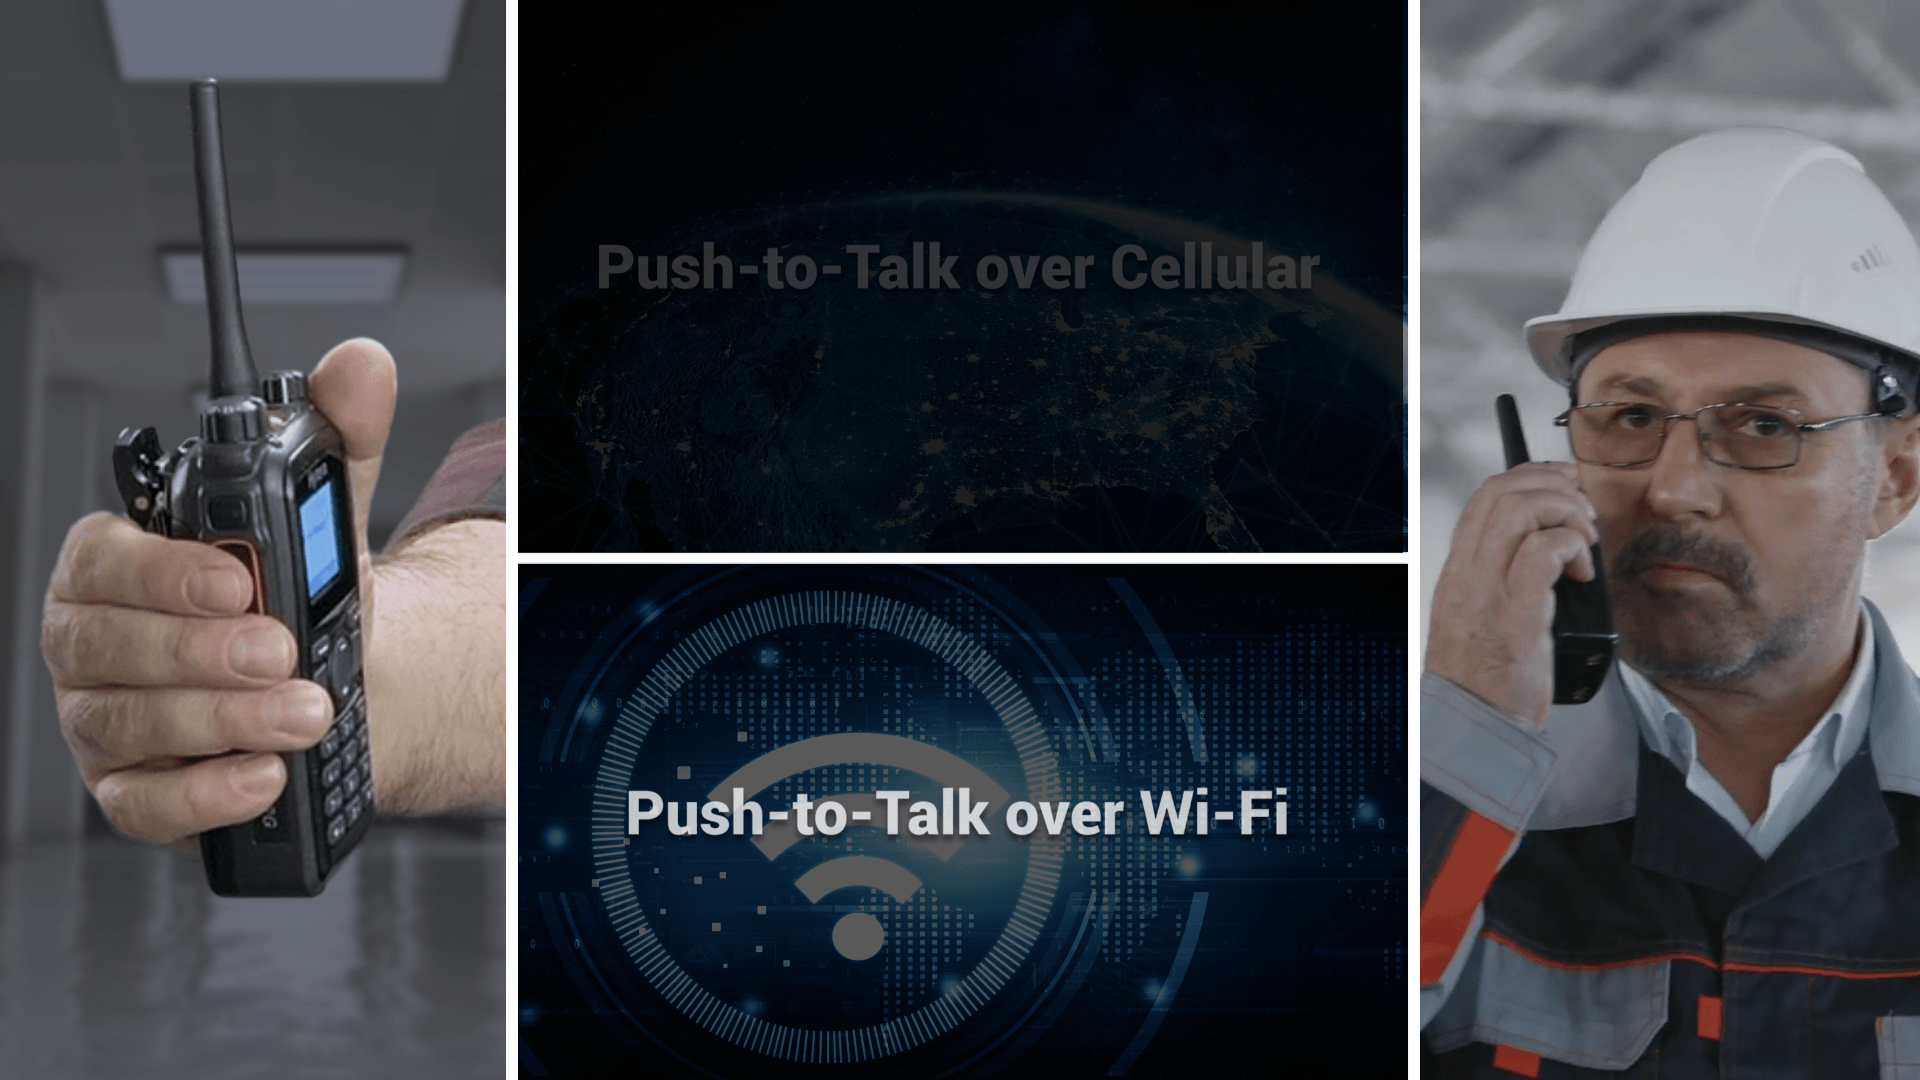 Push-to-Talk over Wi-Fi